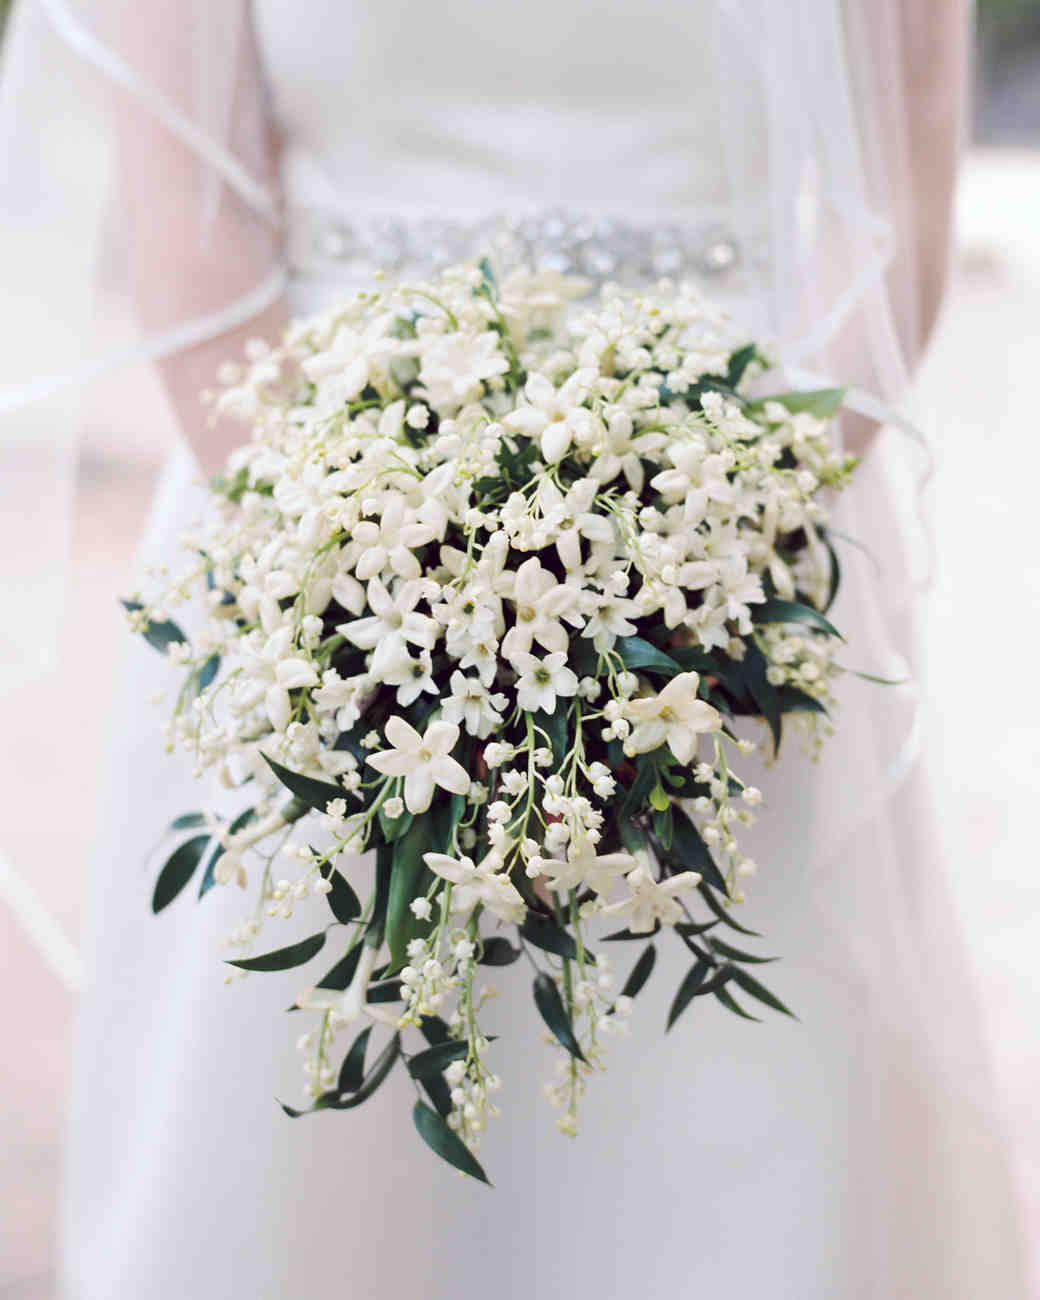 Flower Wedding Bouquet: What Your Flowers Say About Your Wedding Style